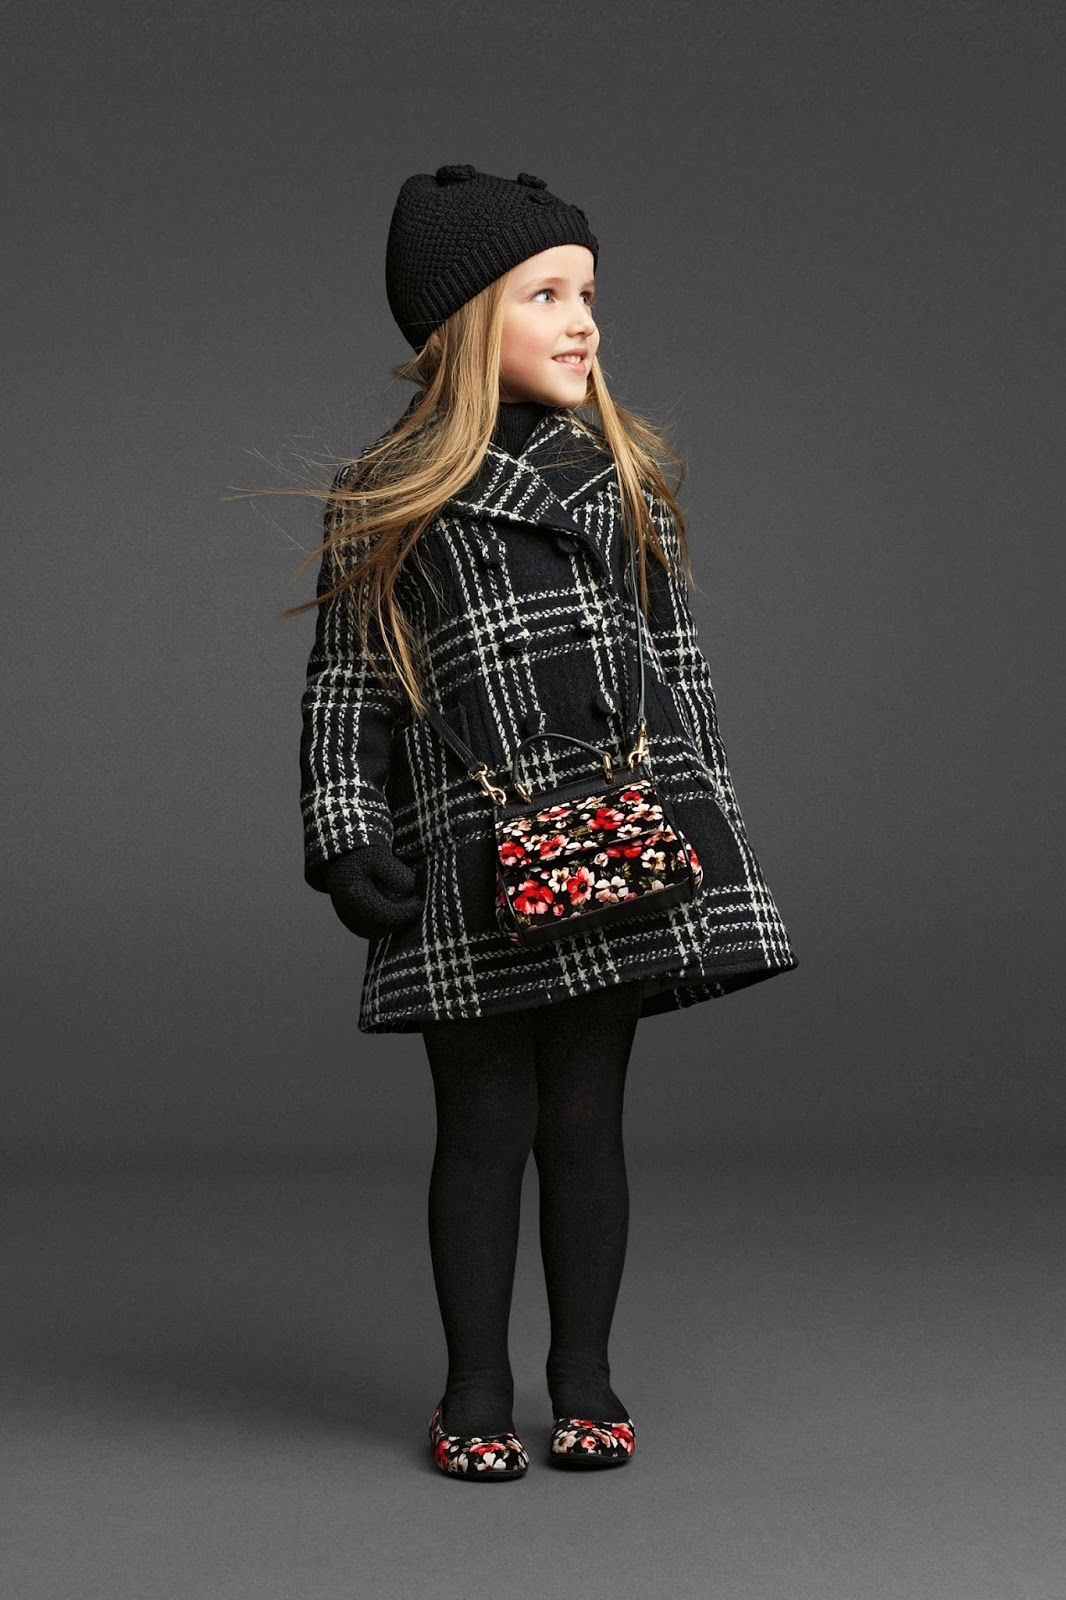 dolce and gabana 2014 kids collection | dolce-and-gabbana-fw-2014-kids-collection-19.jpg